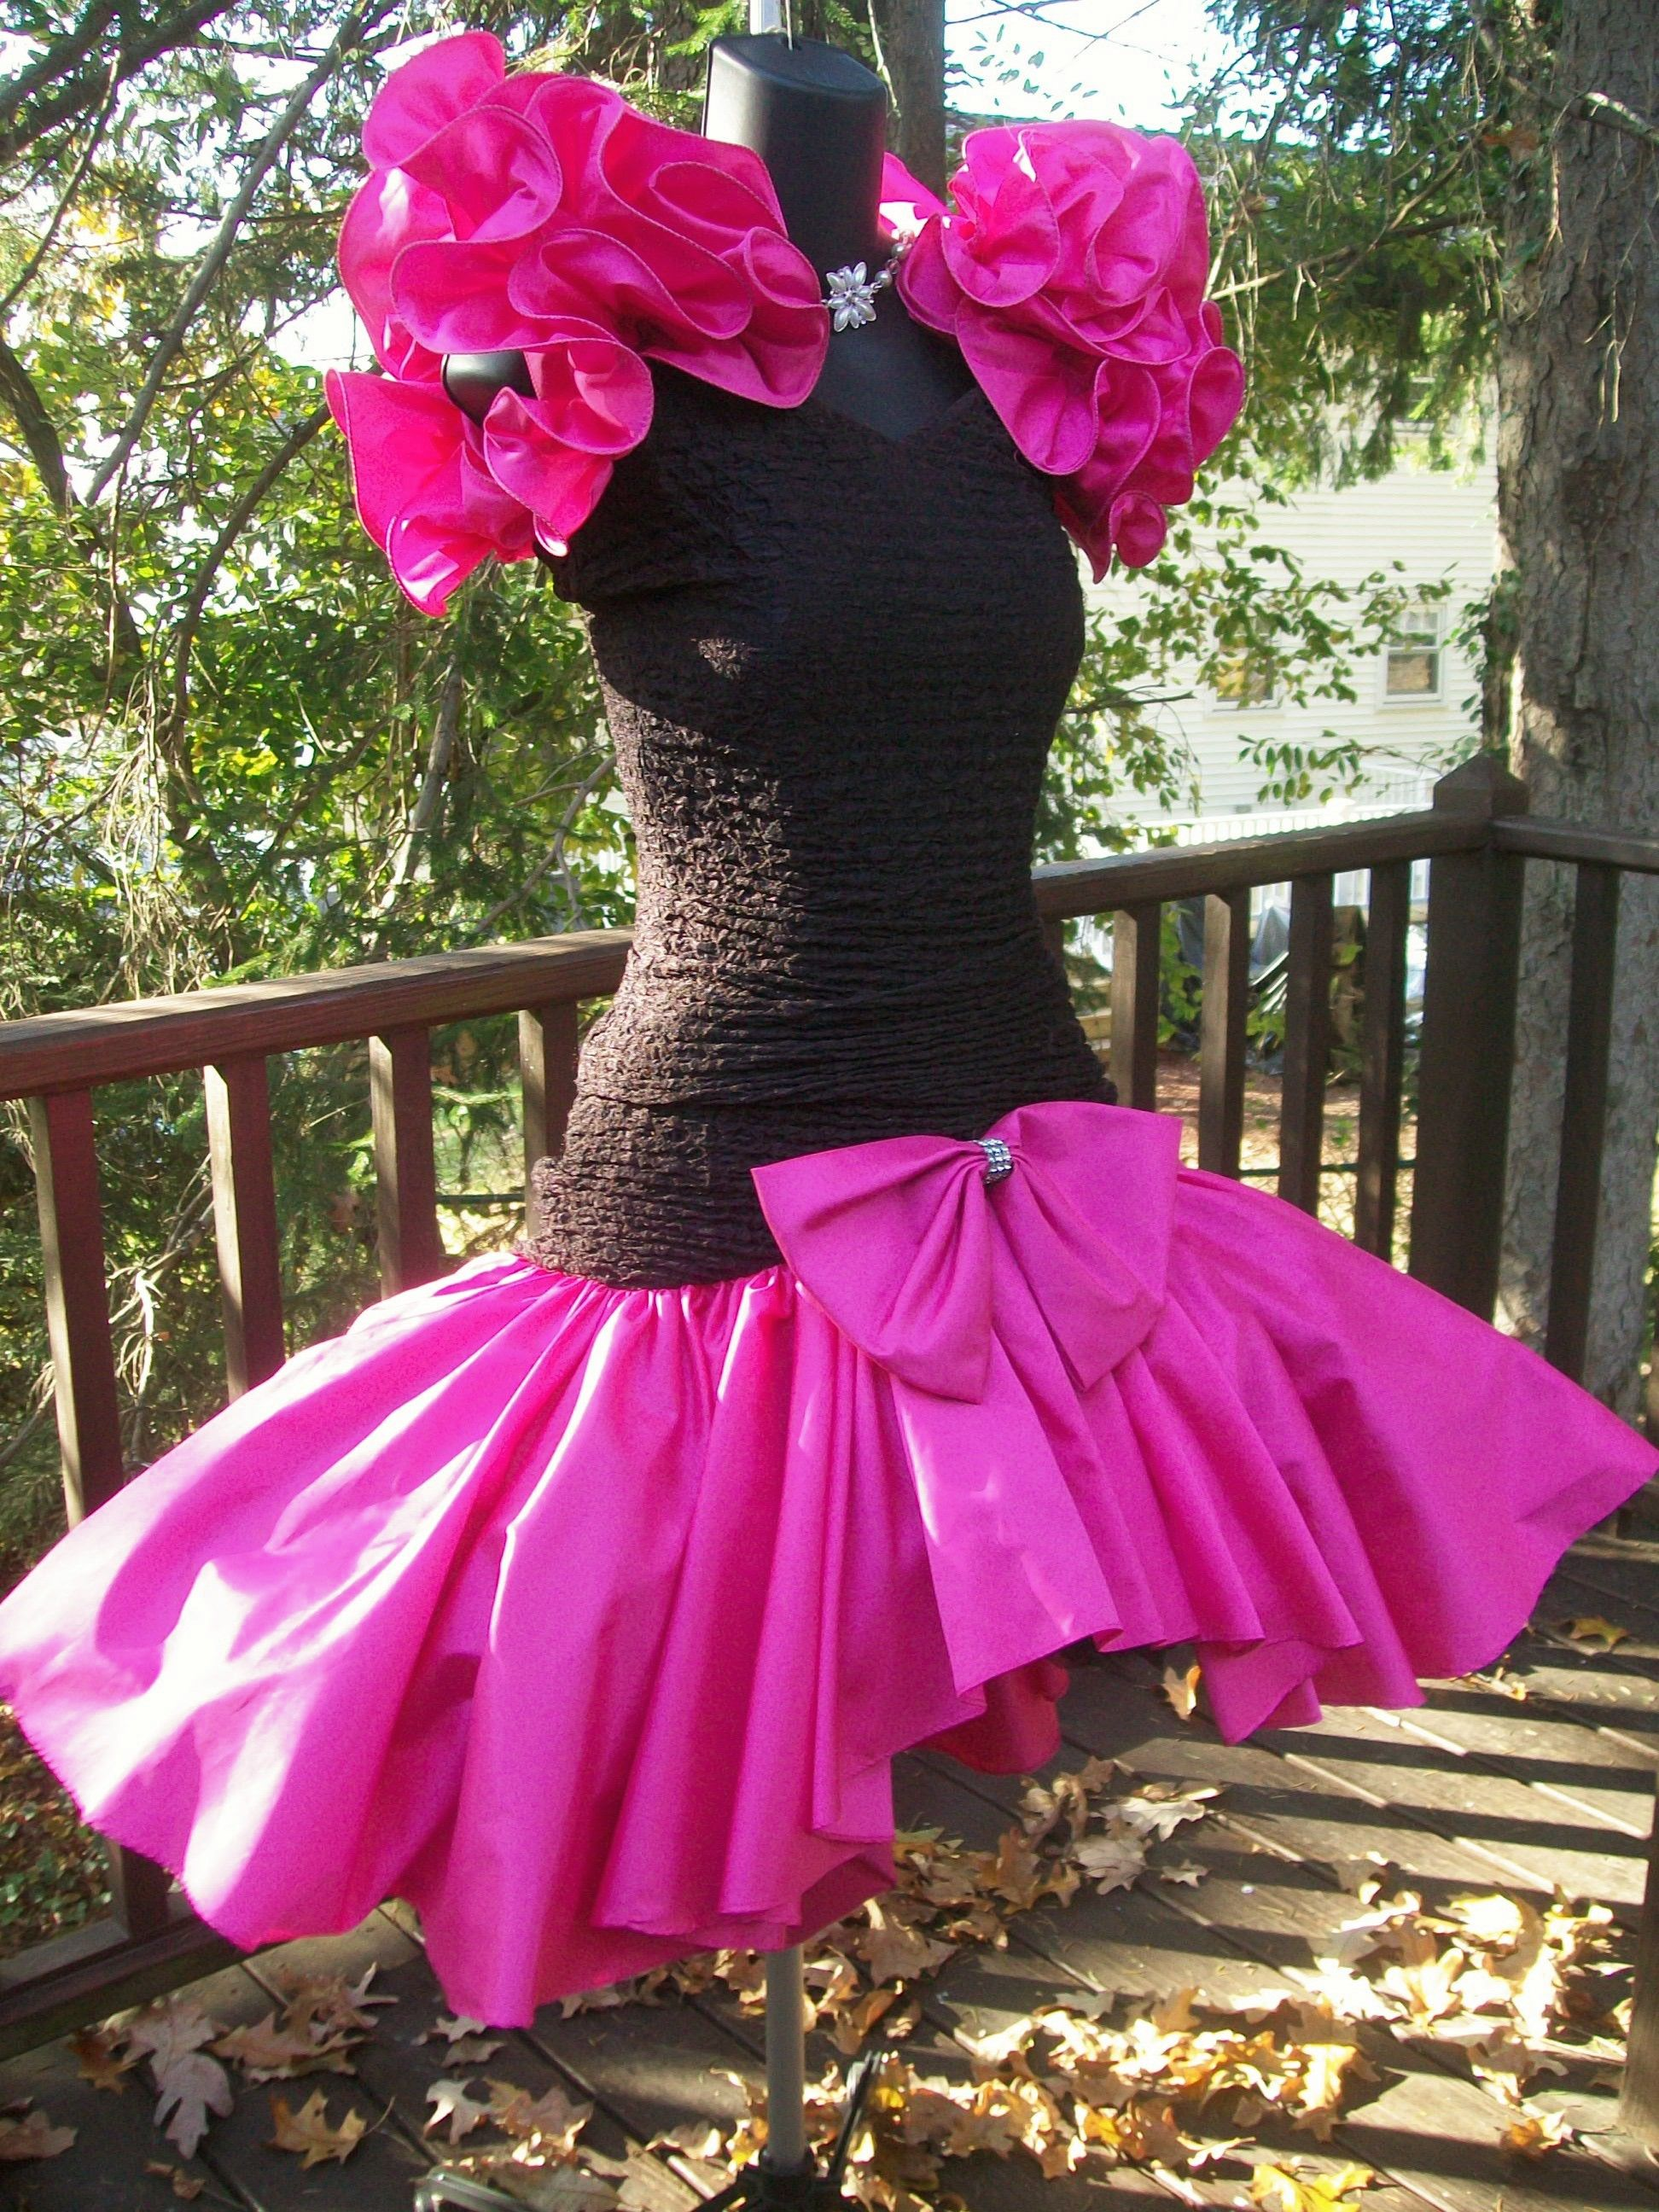 s prom dress material girl I actually kind of love this